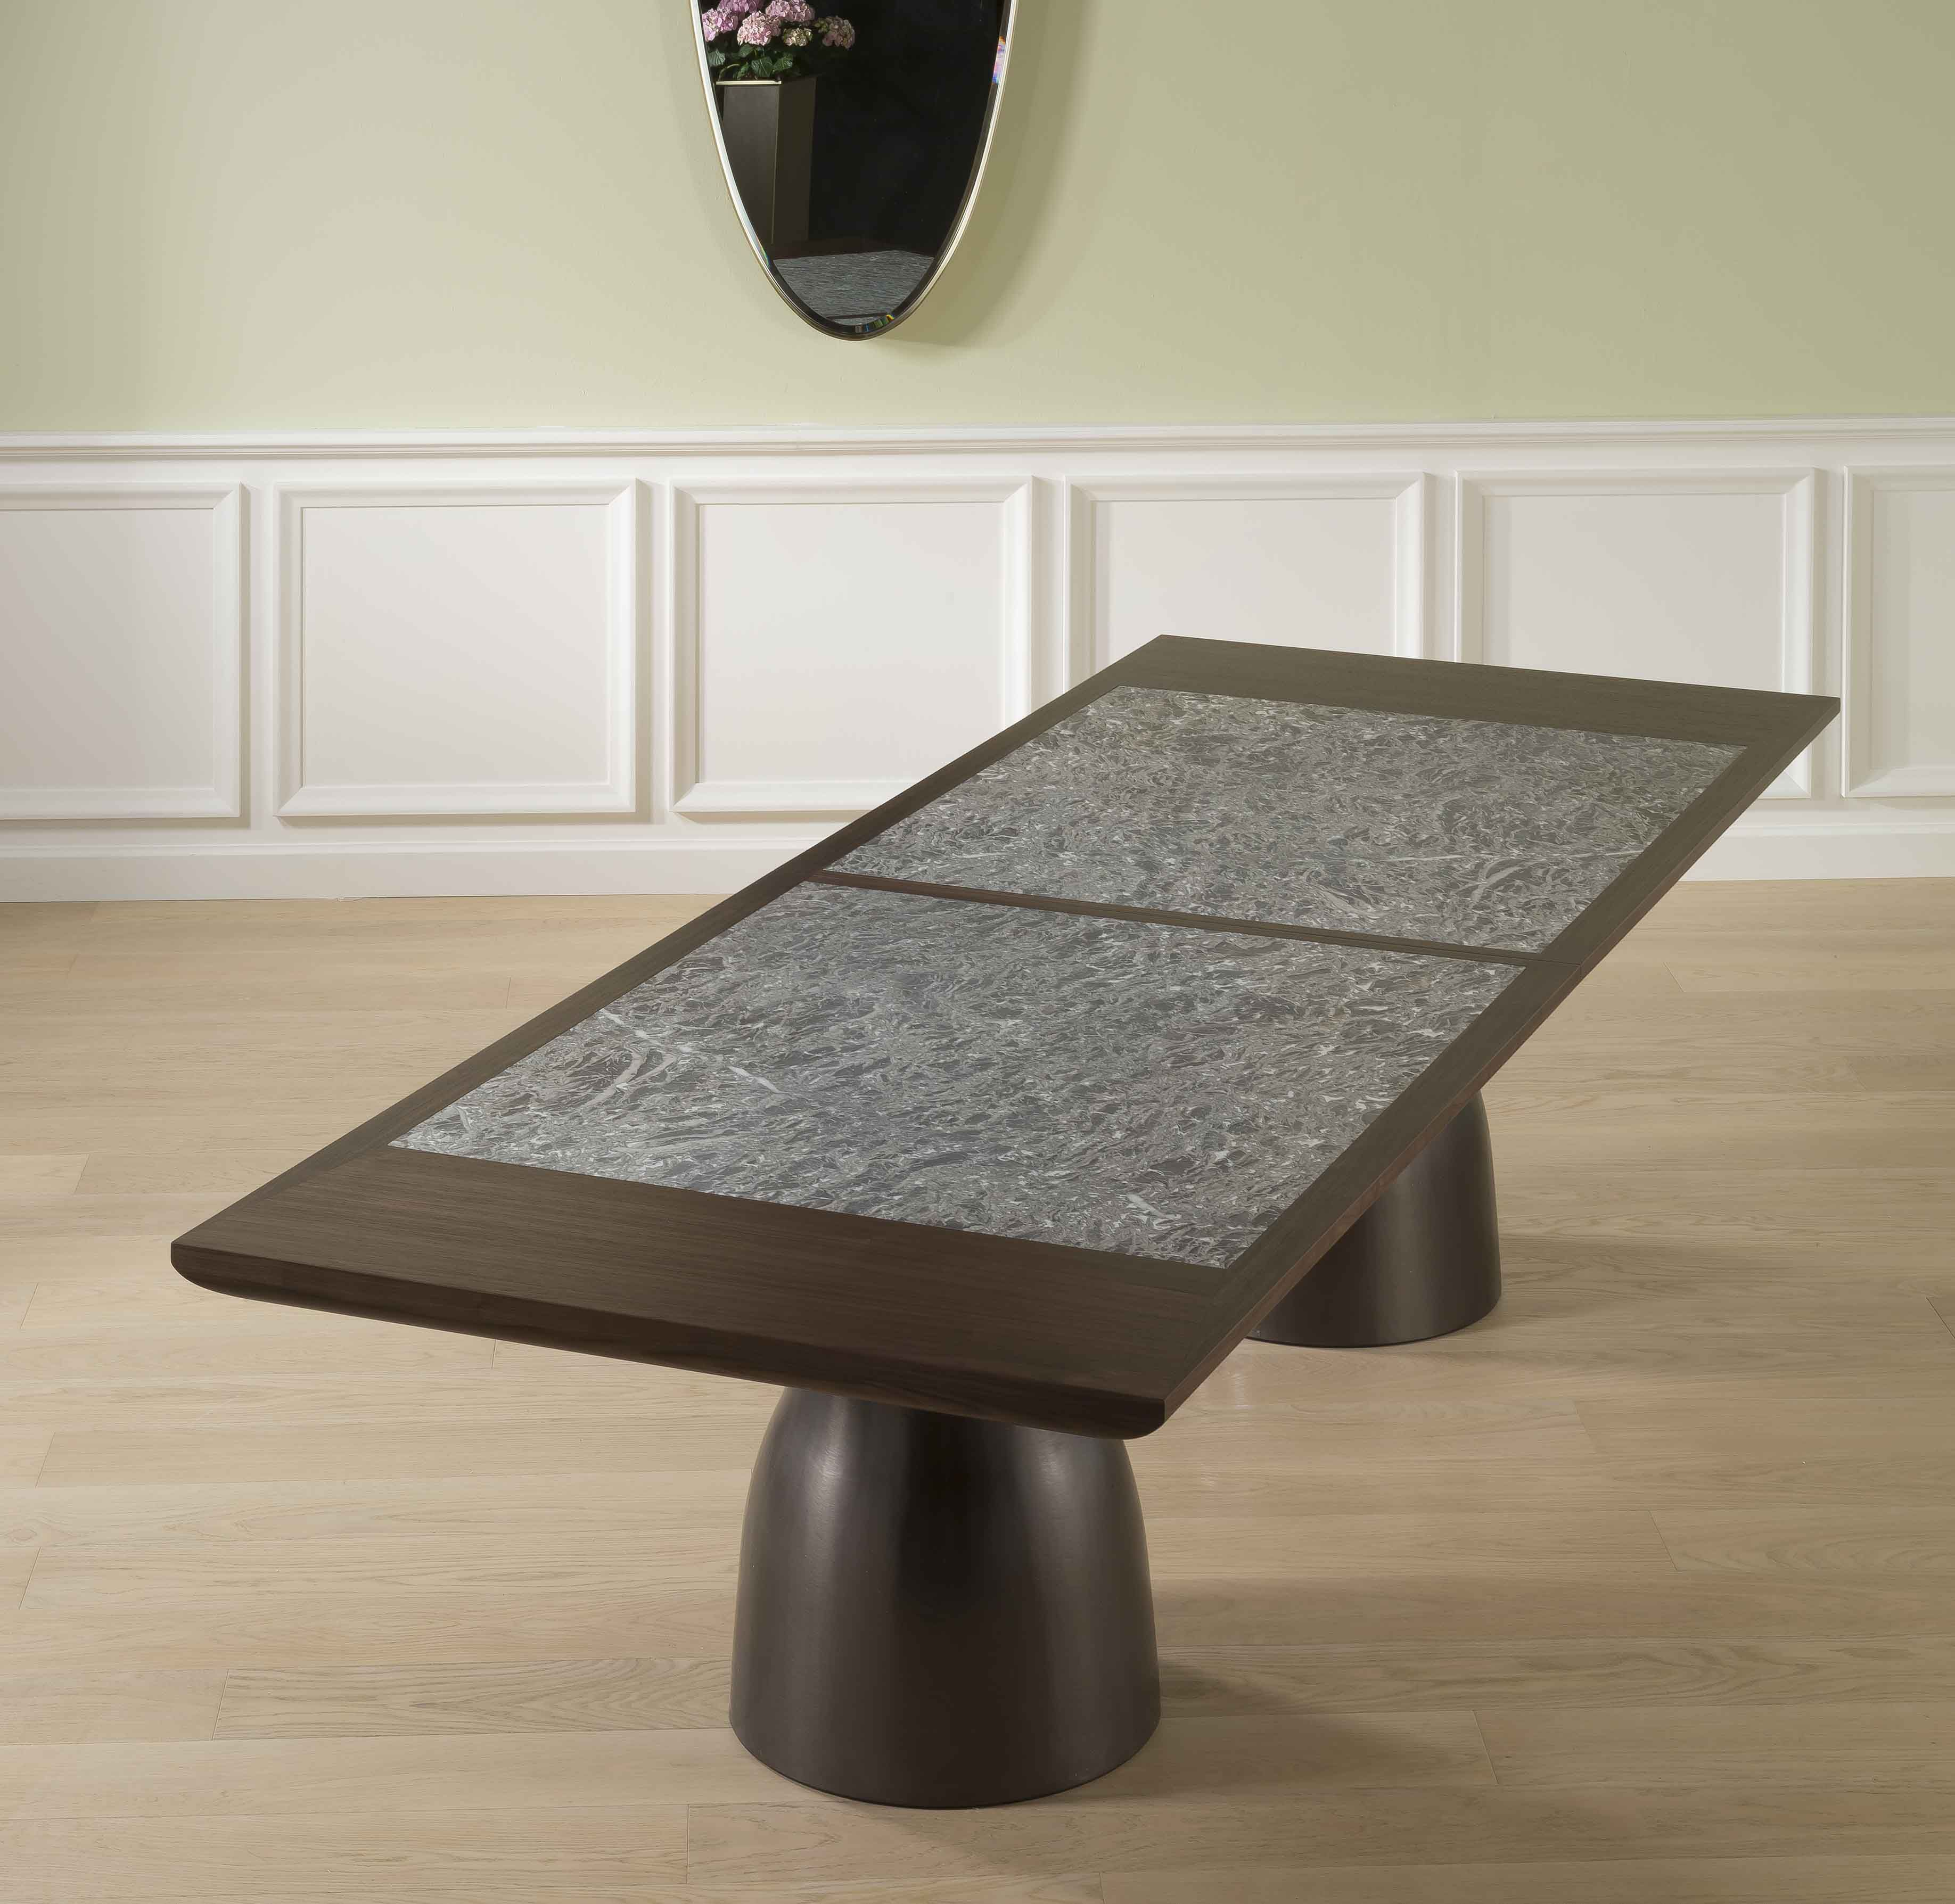 Thomas Dining Table With Extension Leaf Bellavista Collection 2015